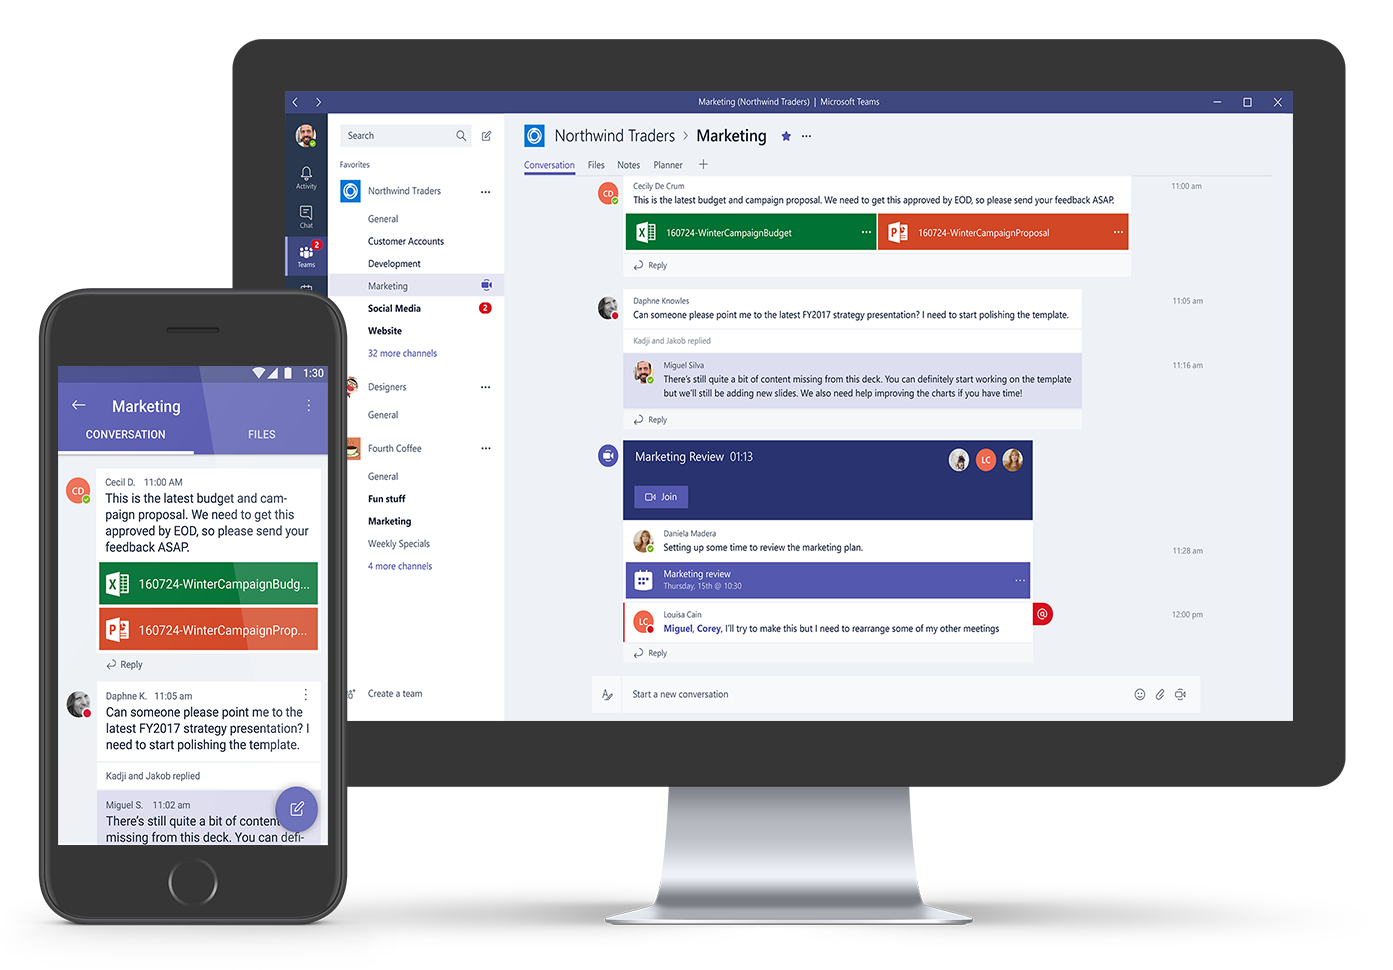 Image showing Microsoft Teams.